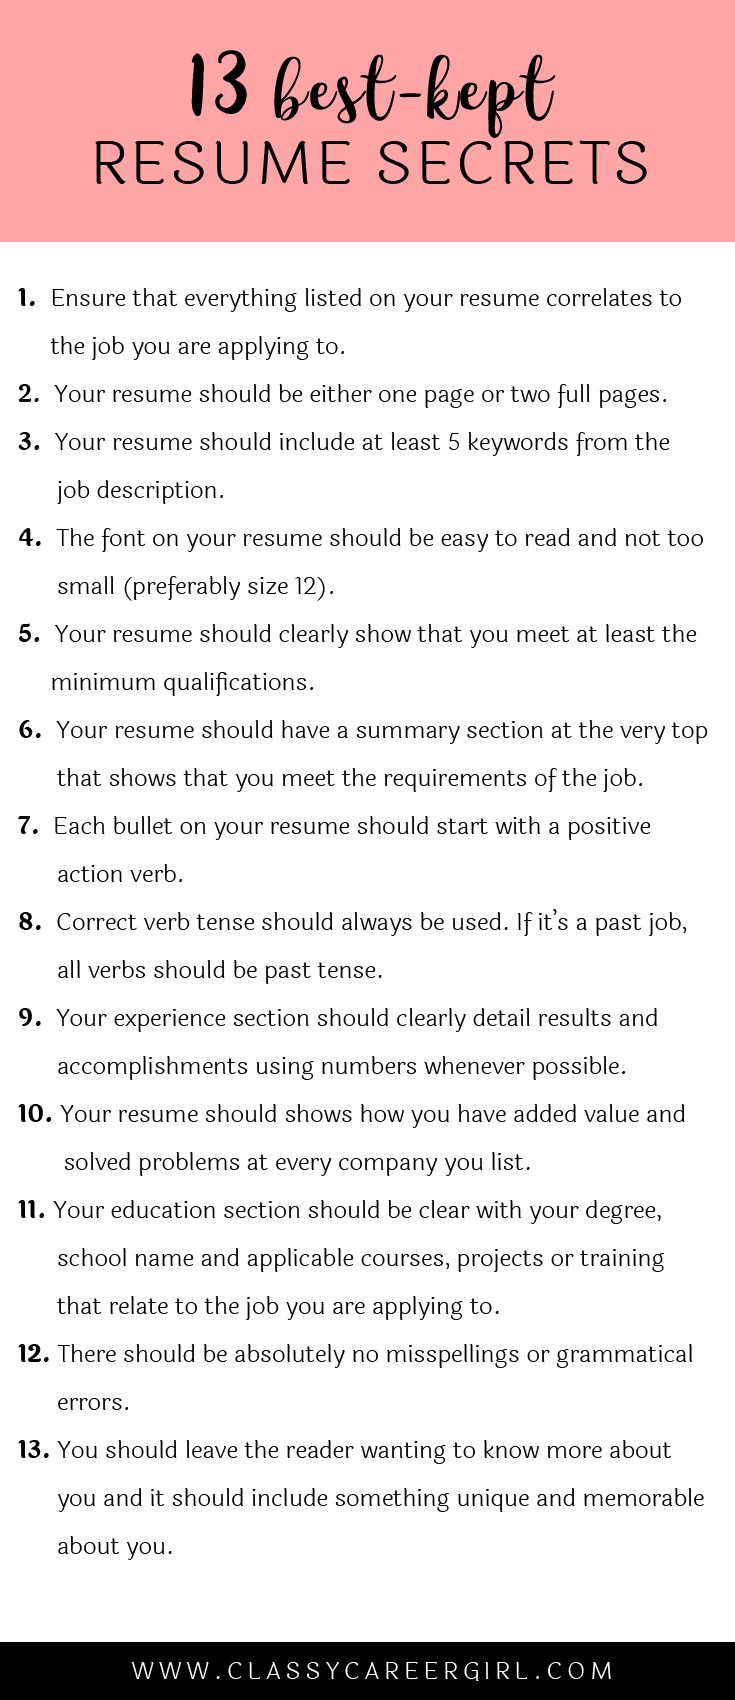 Opposenewapstandardsus  Picturesque  Ideas About Resume On Pinterest  Cv Format Resume Cv And  With Remarkable Some Hiring Managers Will Toss Your Resume Out If You Dont Know These  With Astounding What To Include On Your Resume Also Account Coordinator Resume In Addition Logistics Analyst Resume And Sample Resume Receptionist As Well As Free Resume Pdf Additionally Life Insurance Agent Resume From Pinterestcom With Opposenewapstandardsus  Remarkable  Ideas About Resume On Pinterest  Cv Format Resume Cv And  With Astounding Some Hiring Managers Will Toss Your Resume Out If You Dont Know These  And Picturesque What To Include On Your Resume Also Account Coordinator Resume In Addition Logistics Analyst Resume From Pinterestcom